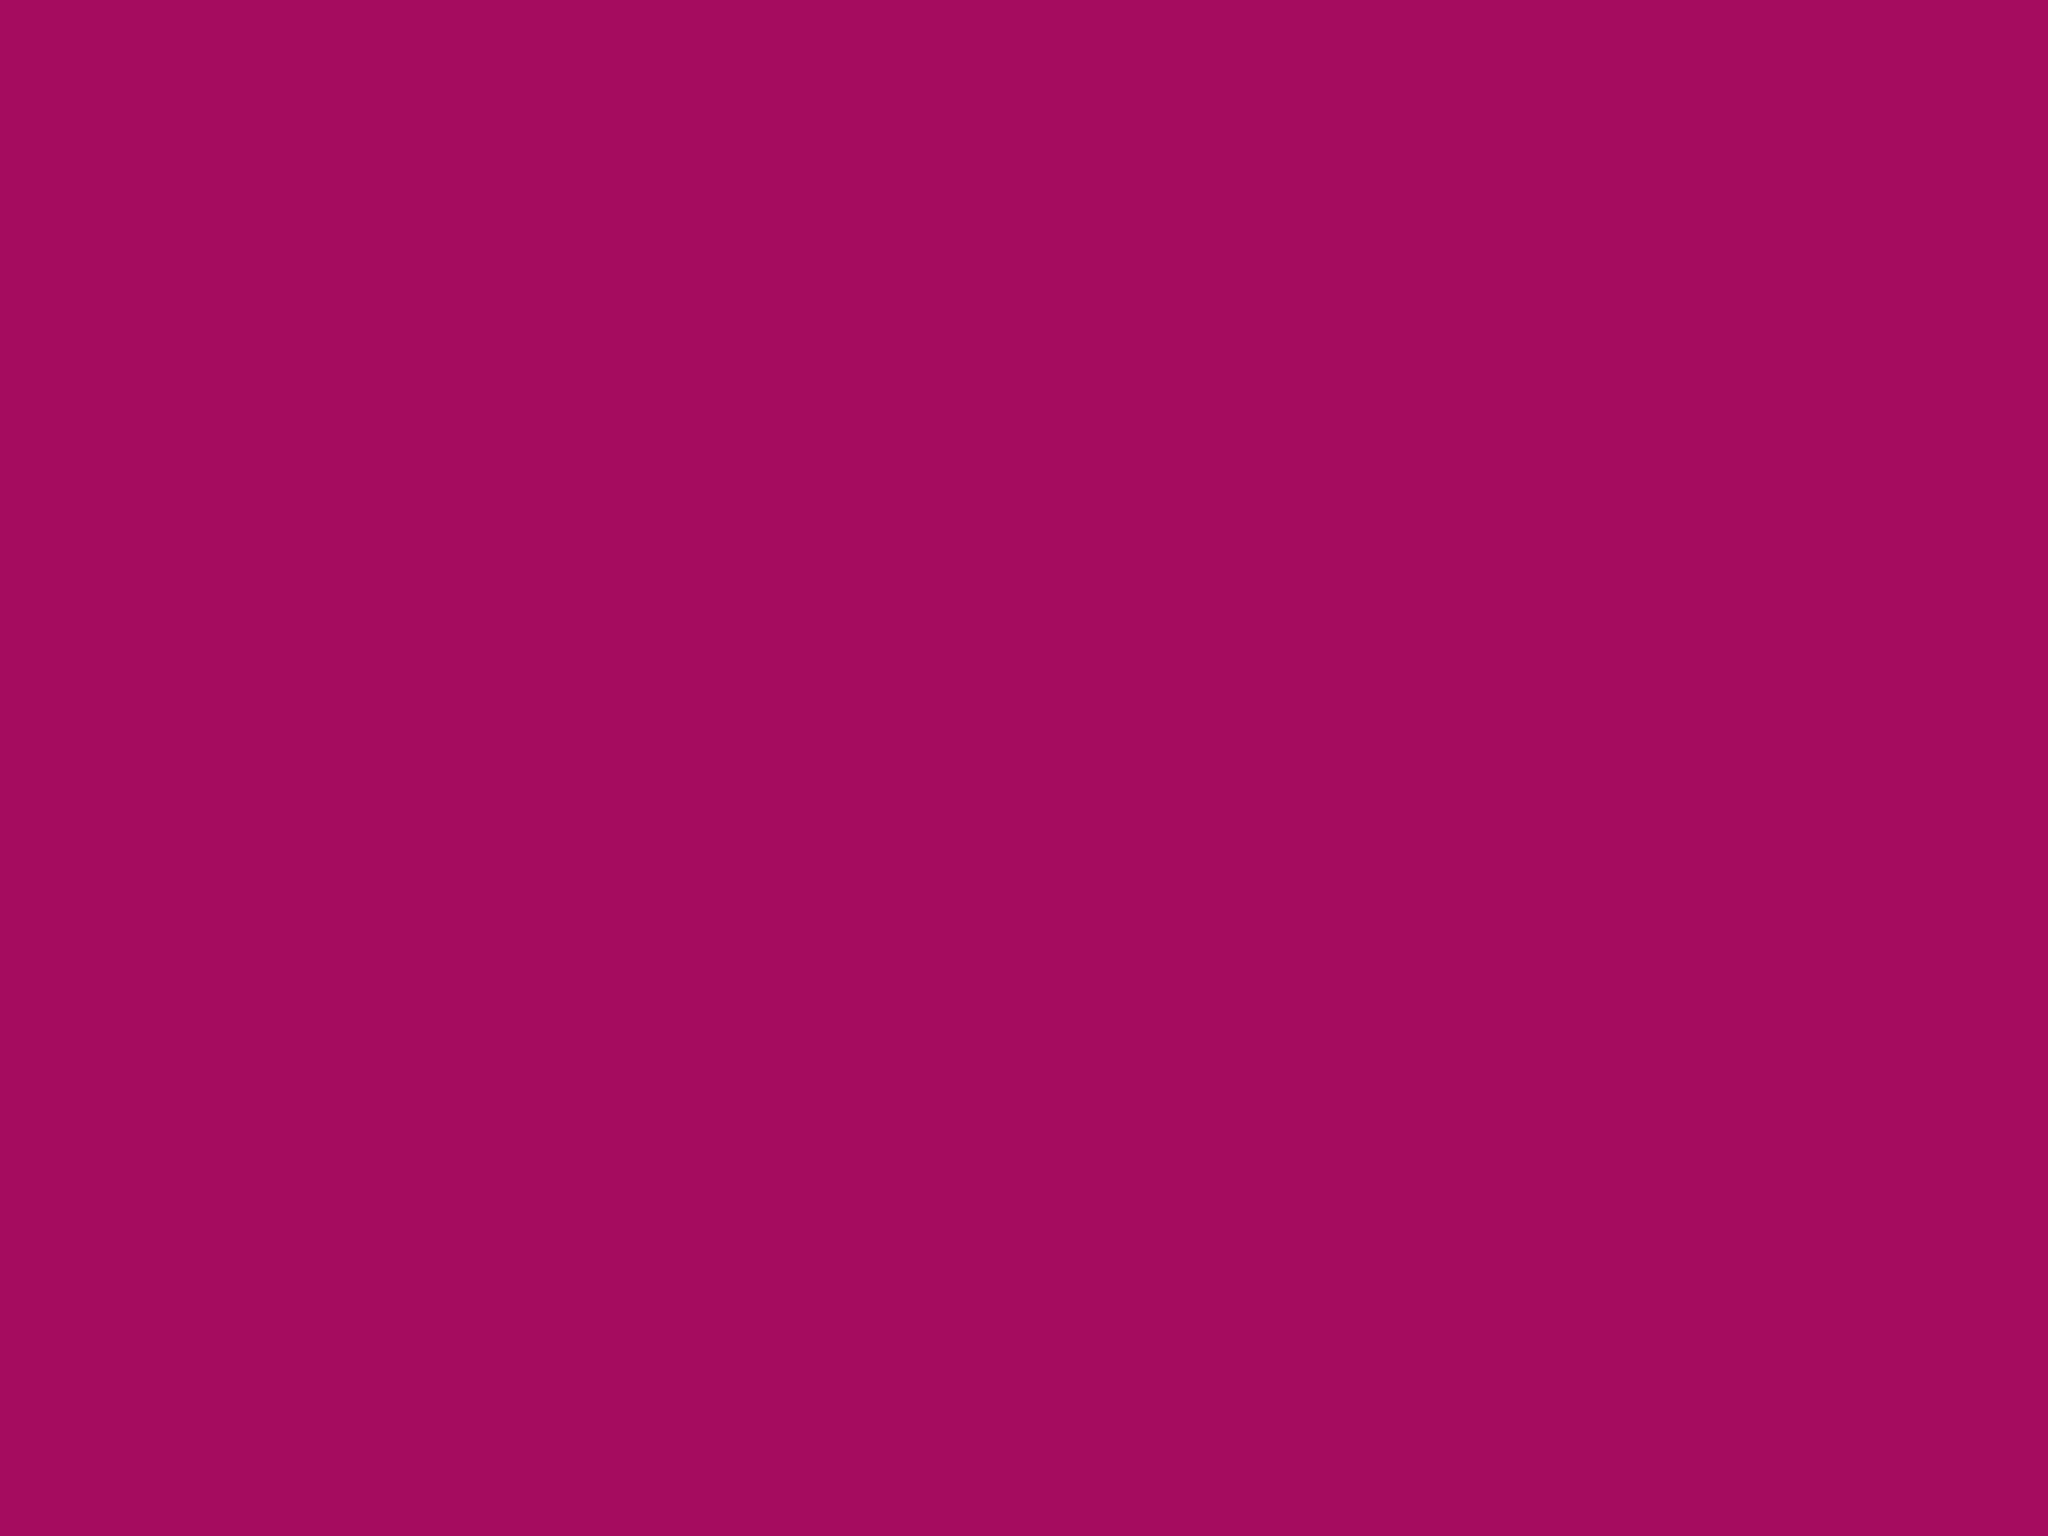 2048x1536 Jazzberry Jam Solid Color Background